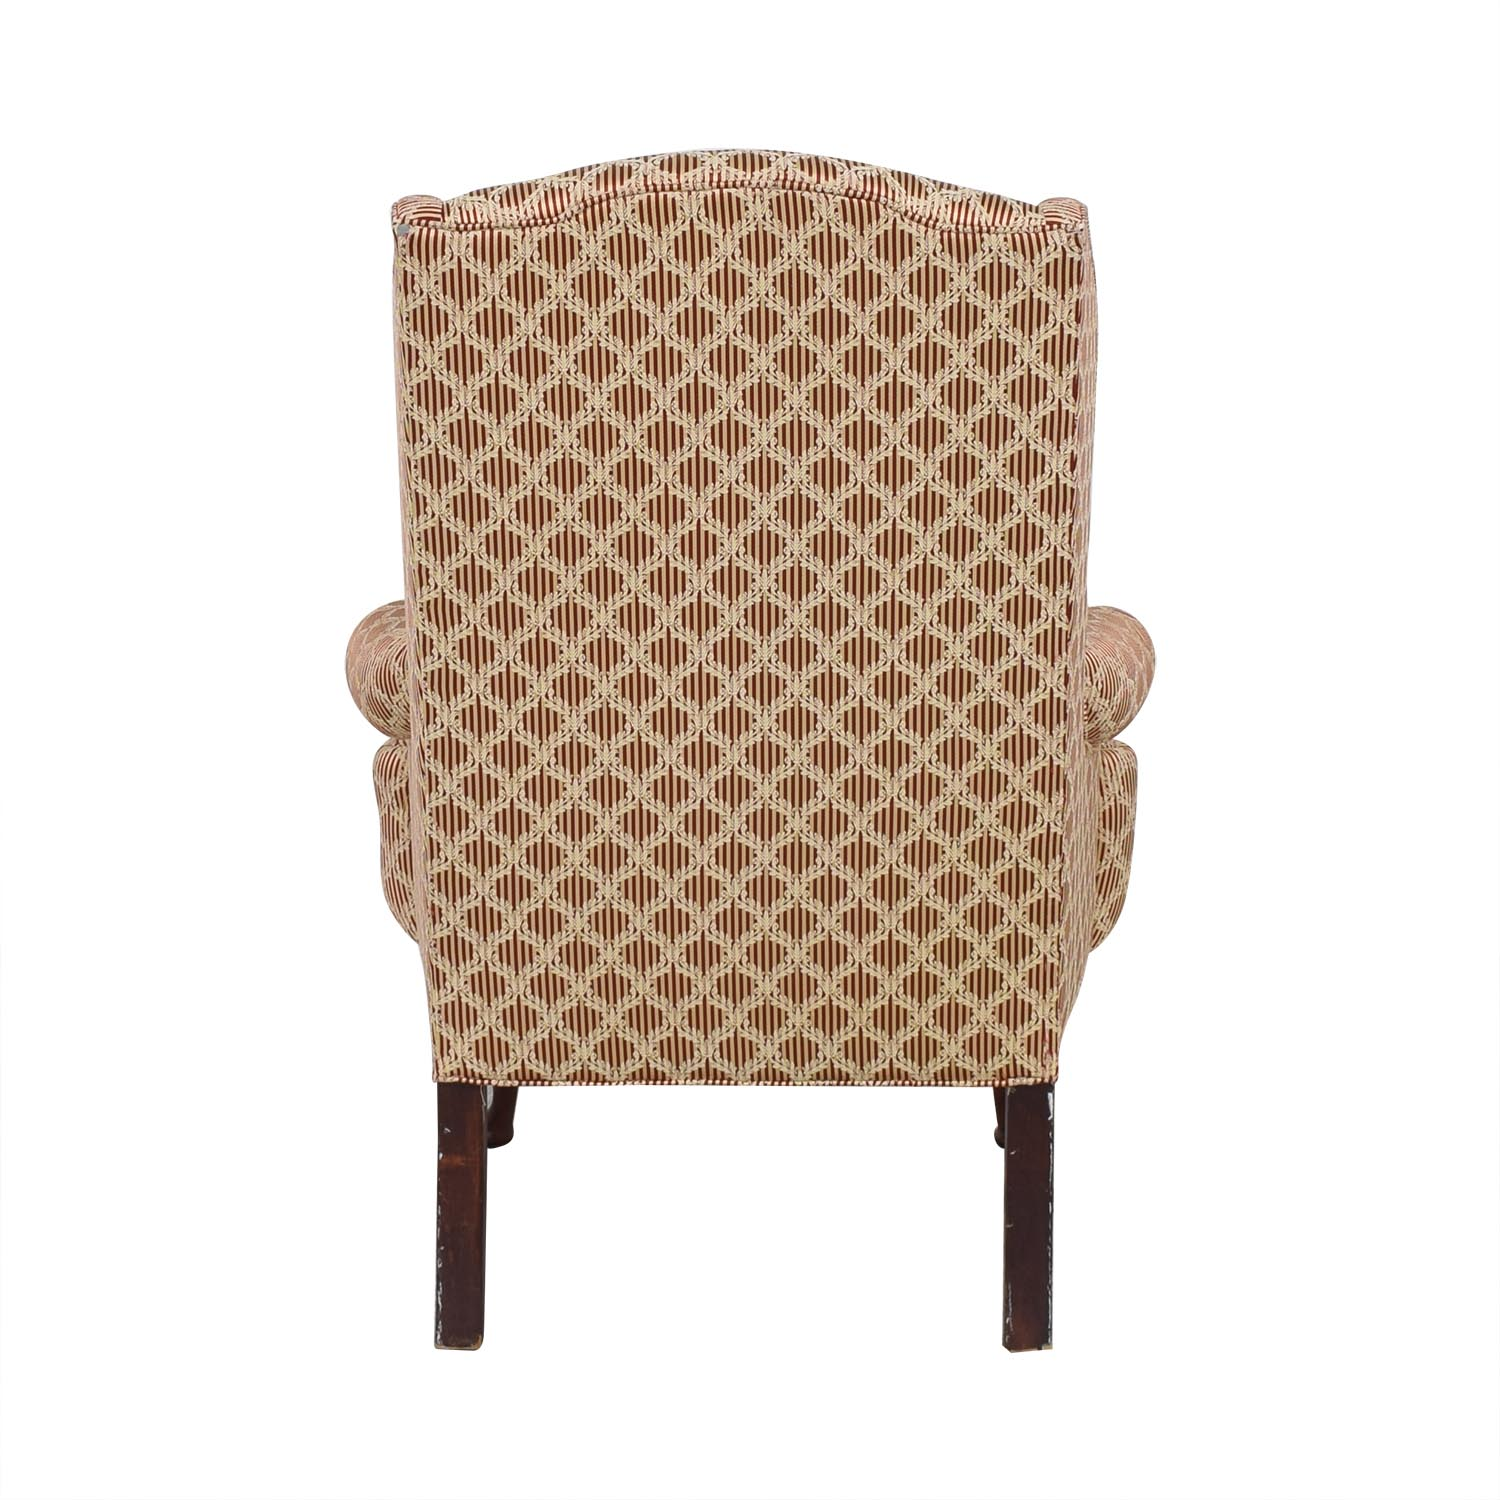 buy Plunkett Upholstered Wingback Chair Plunkett Furniture Chairs